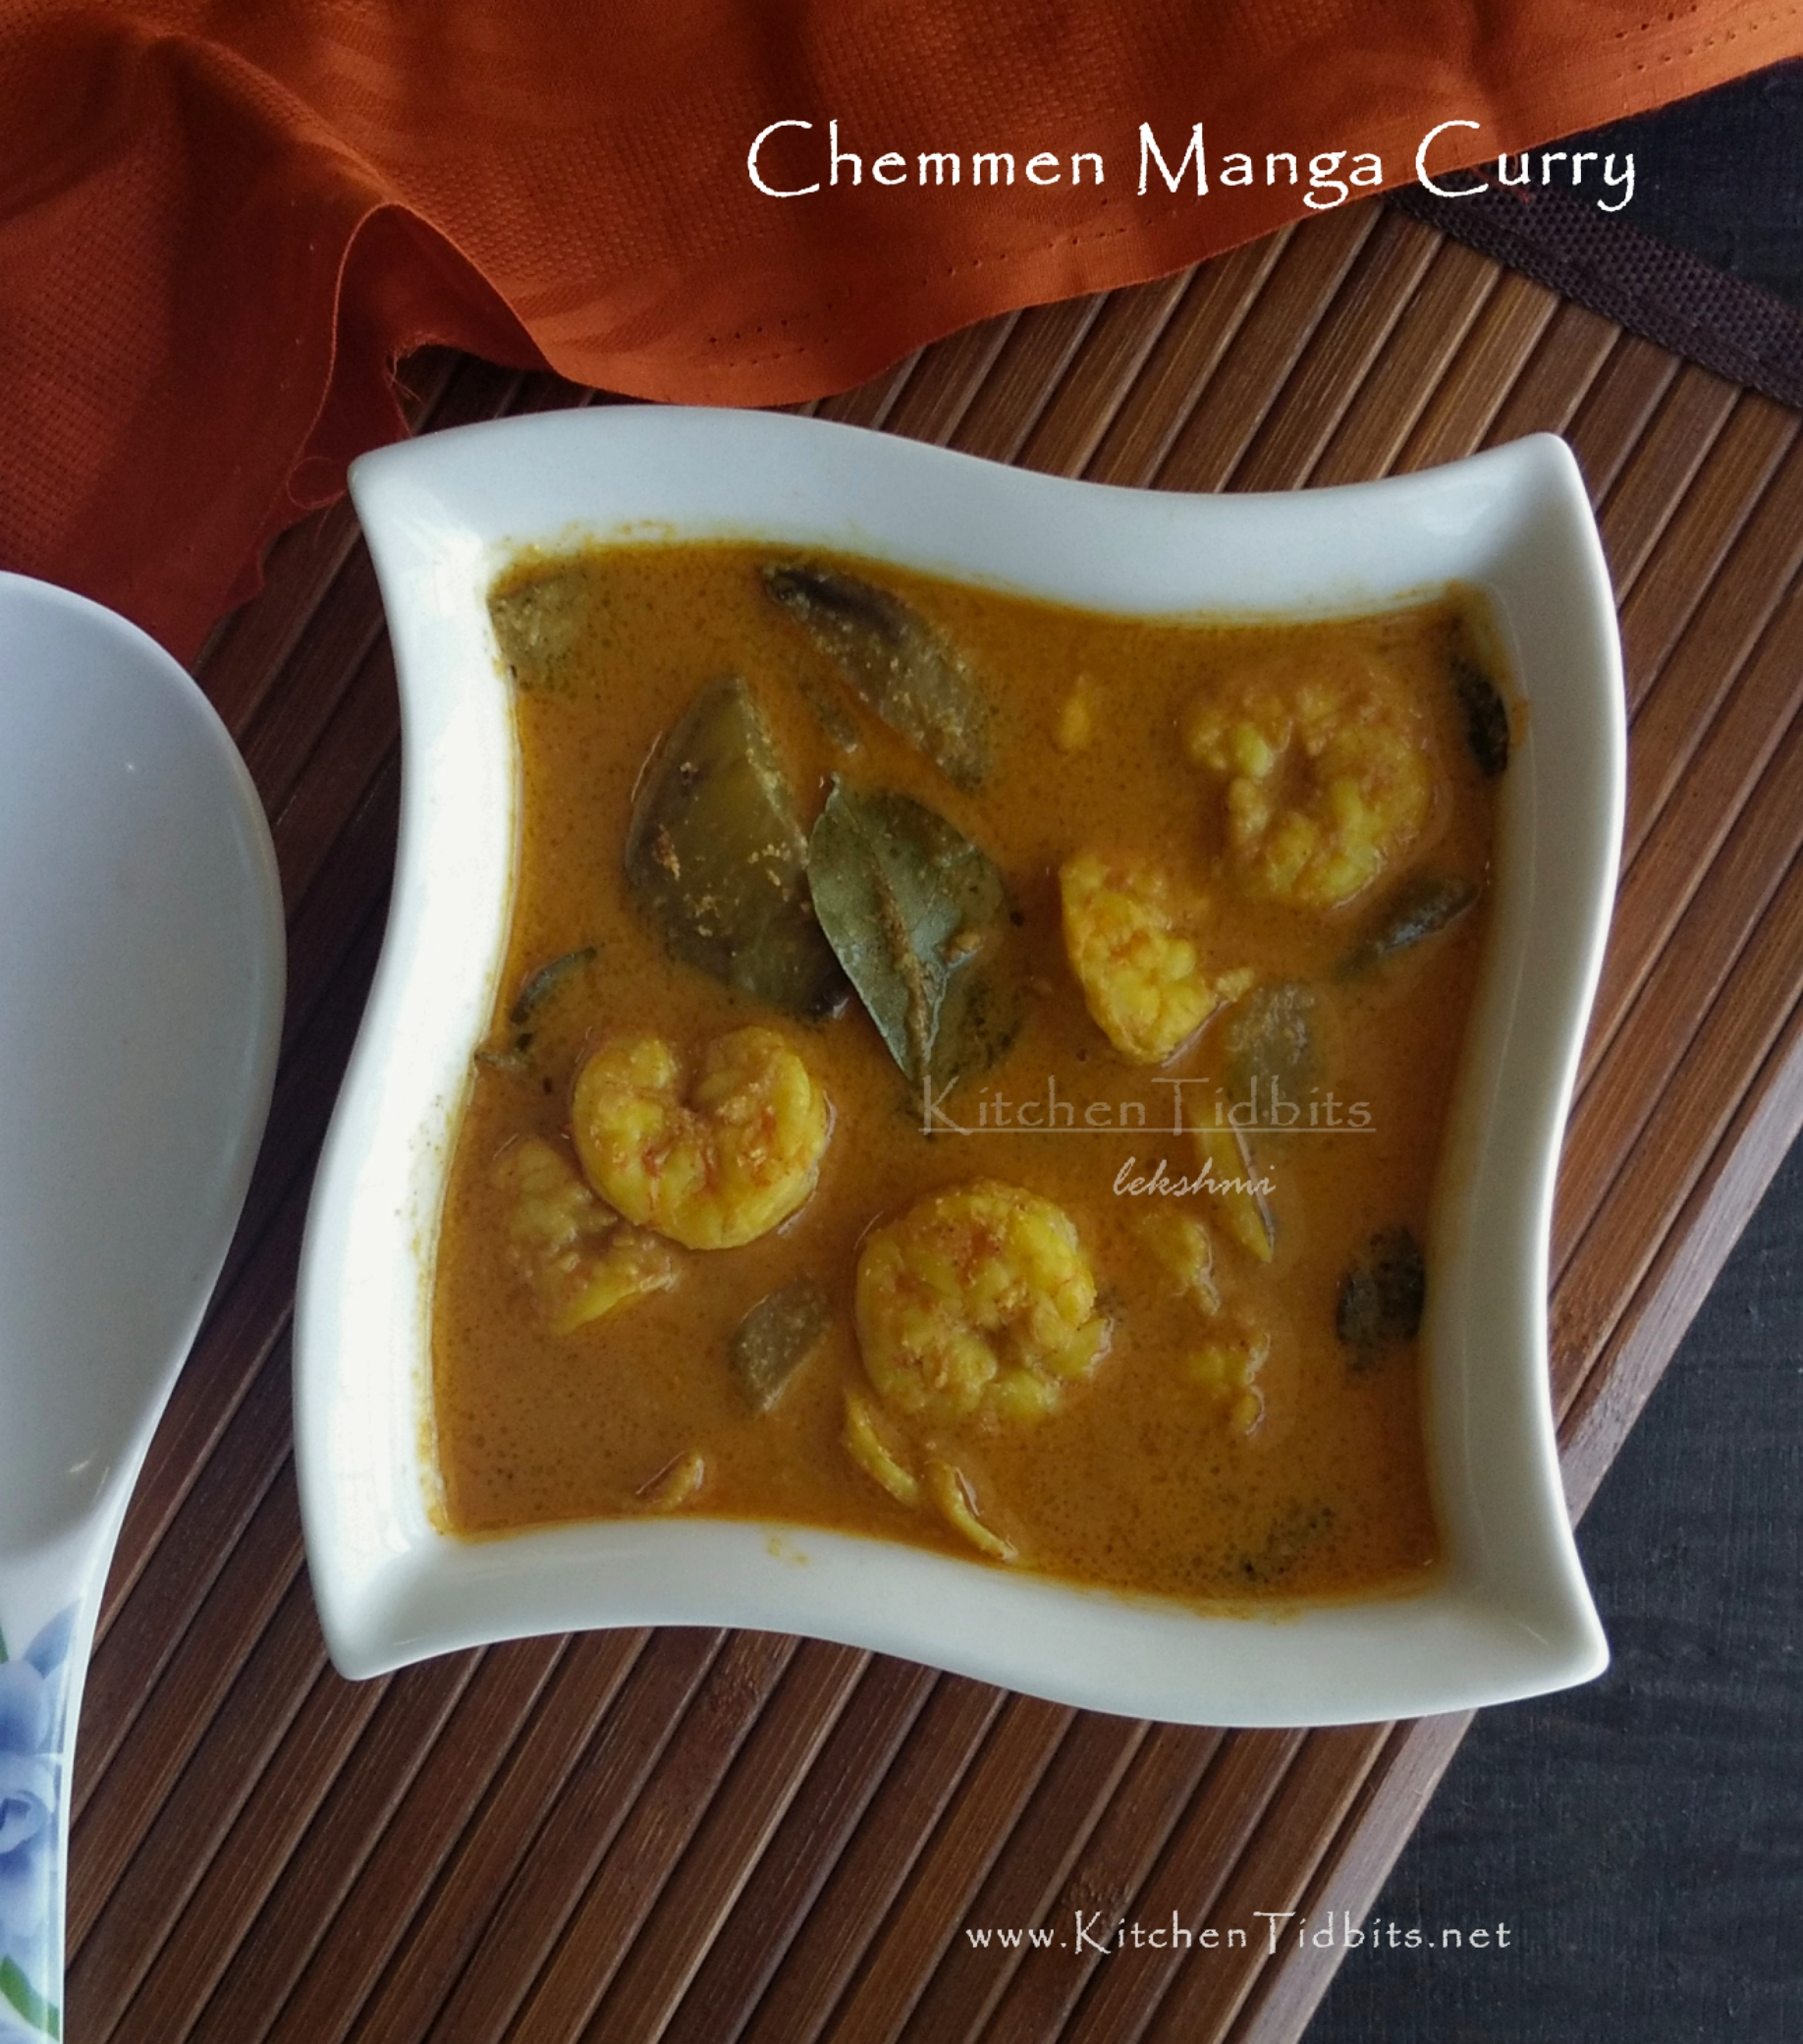 Chemmen Manga Curry/Prawns -Mango Curry